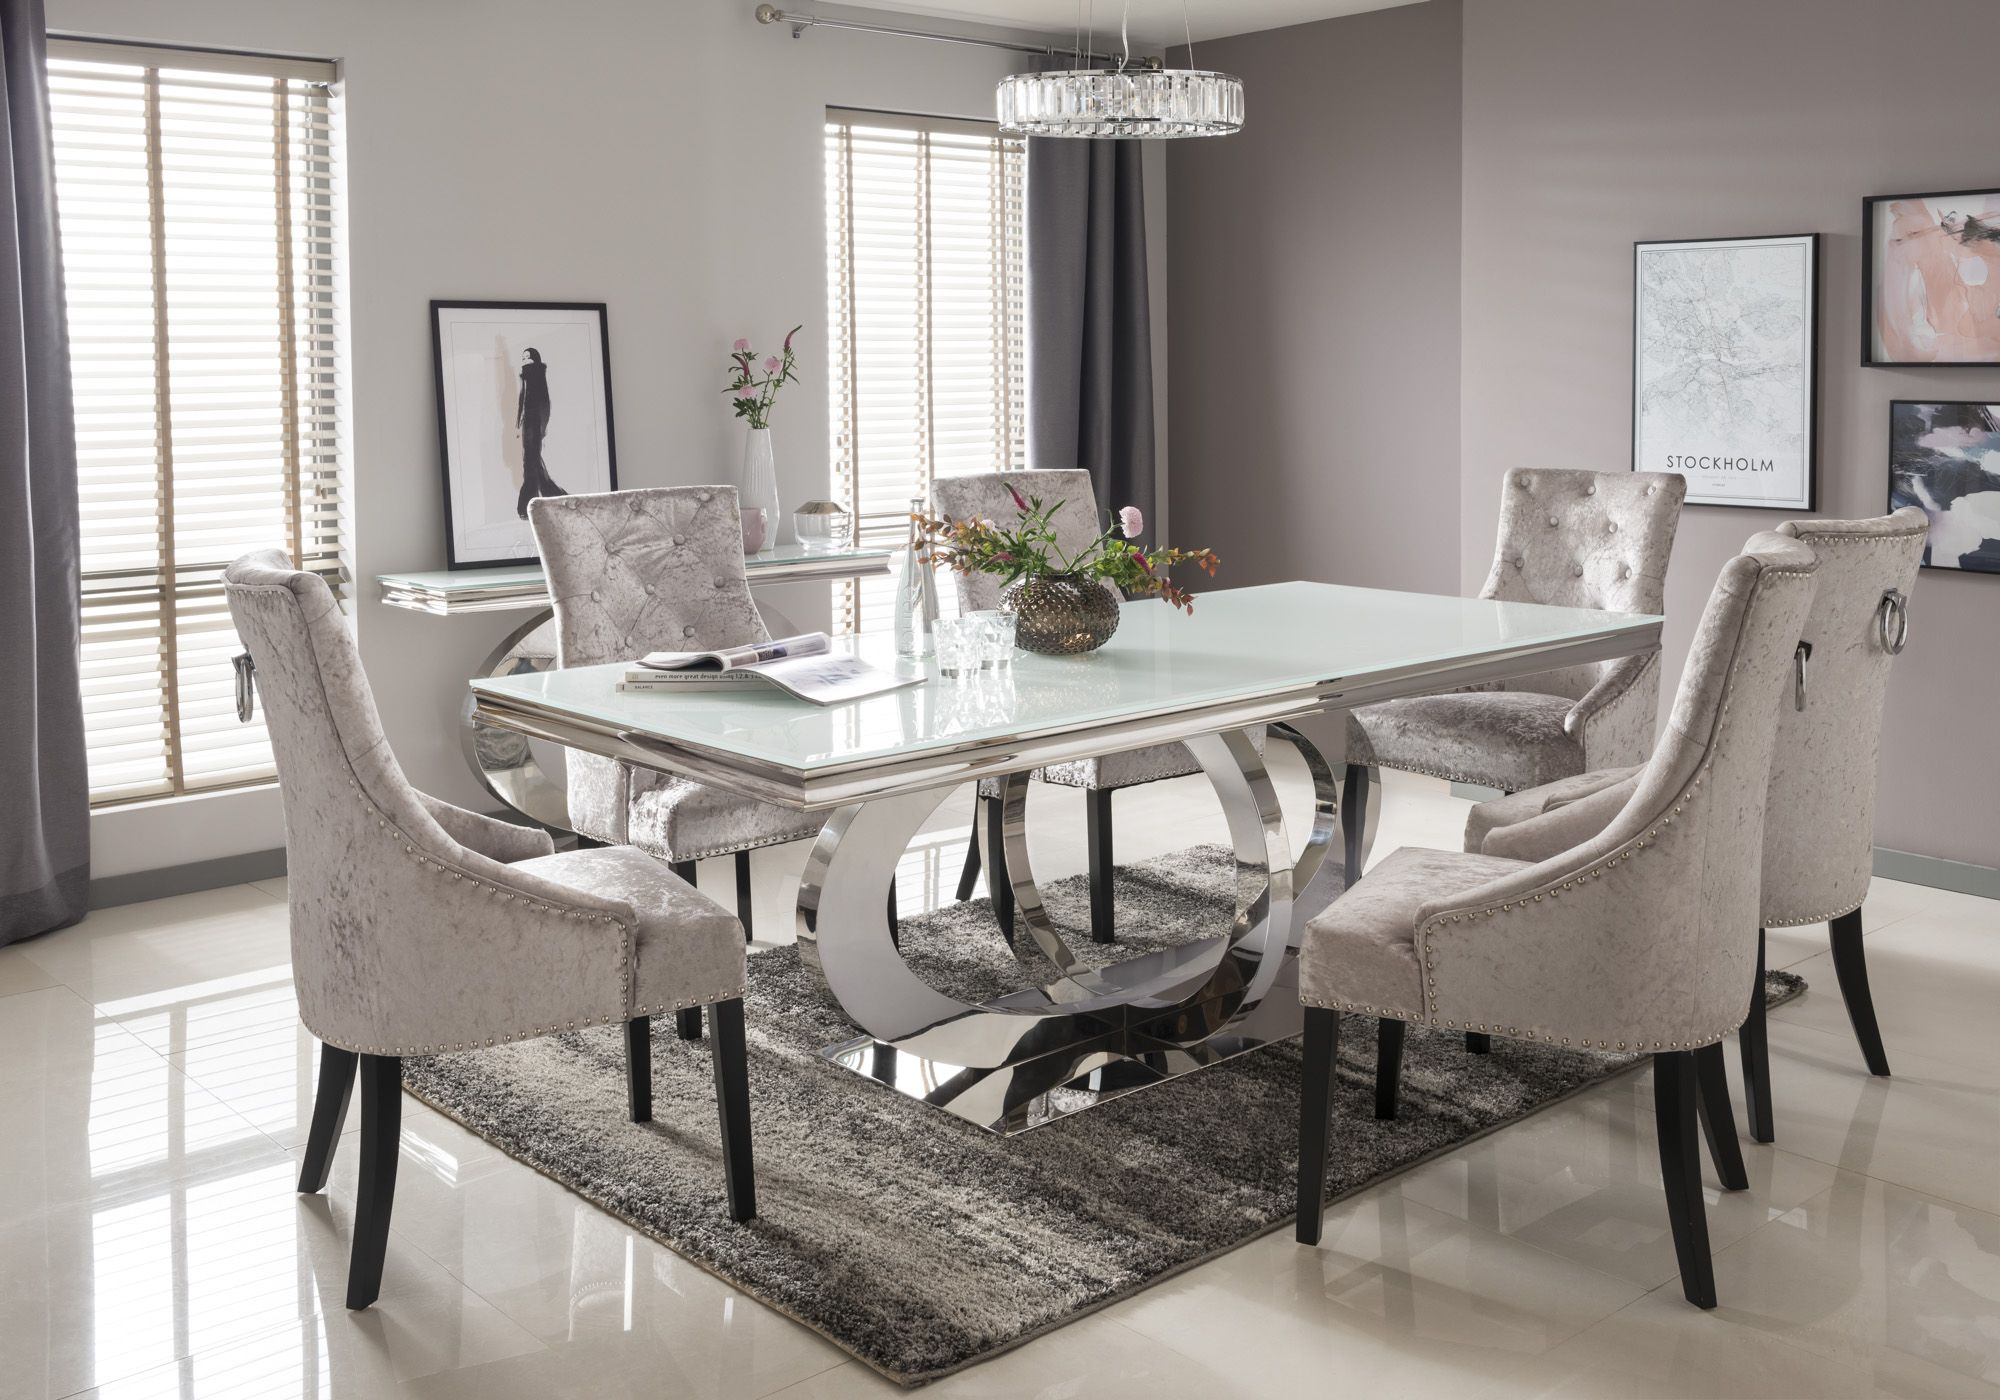 923e7ba31a Aquila Dining table, Tempered Glass, Polished Steel, Chic, Classy. Free  delivery   eBay